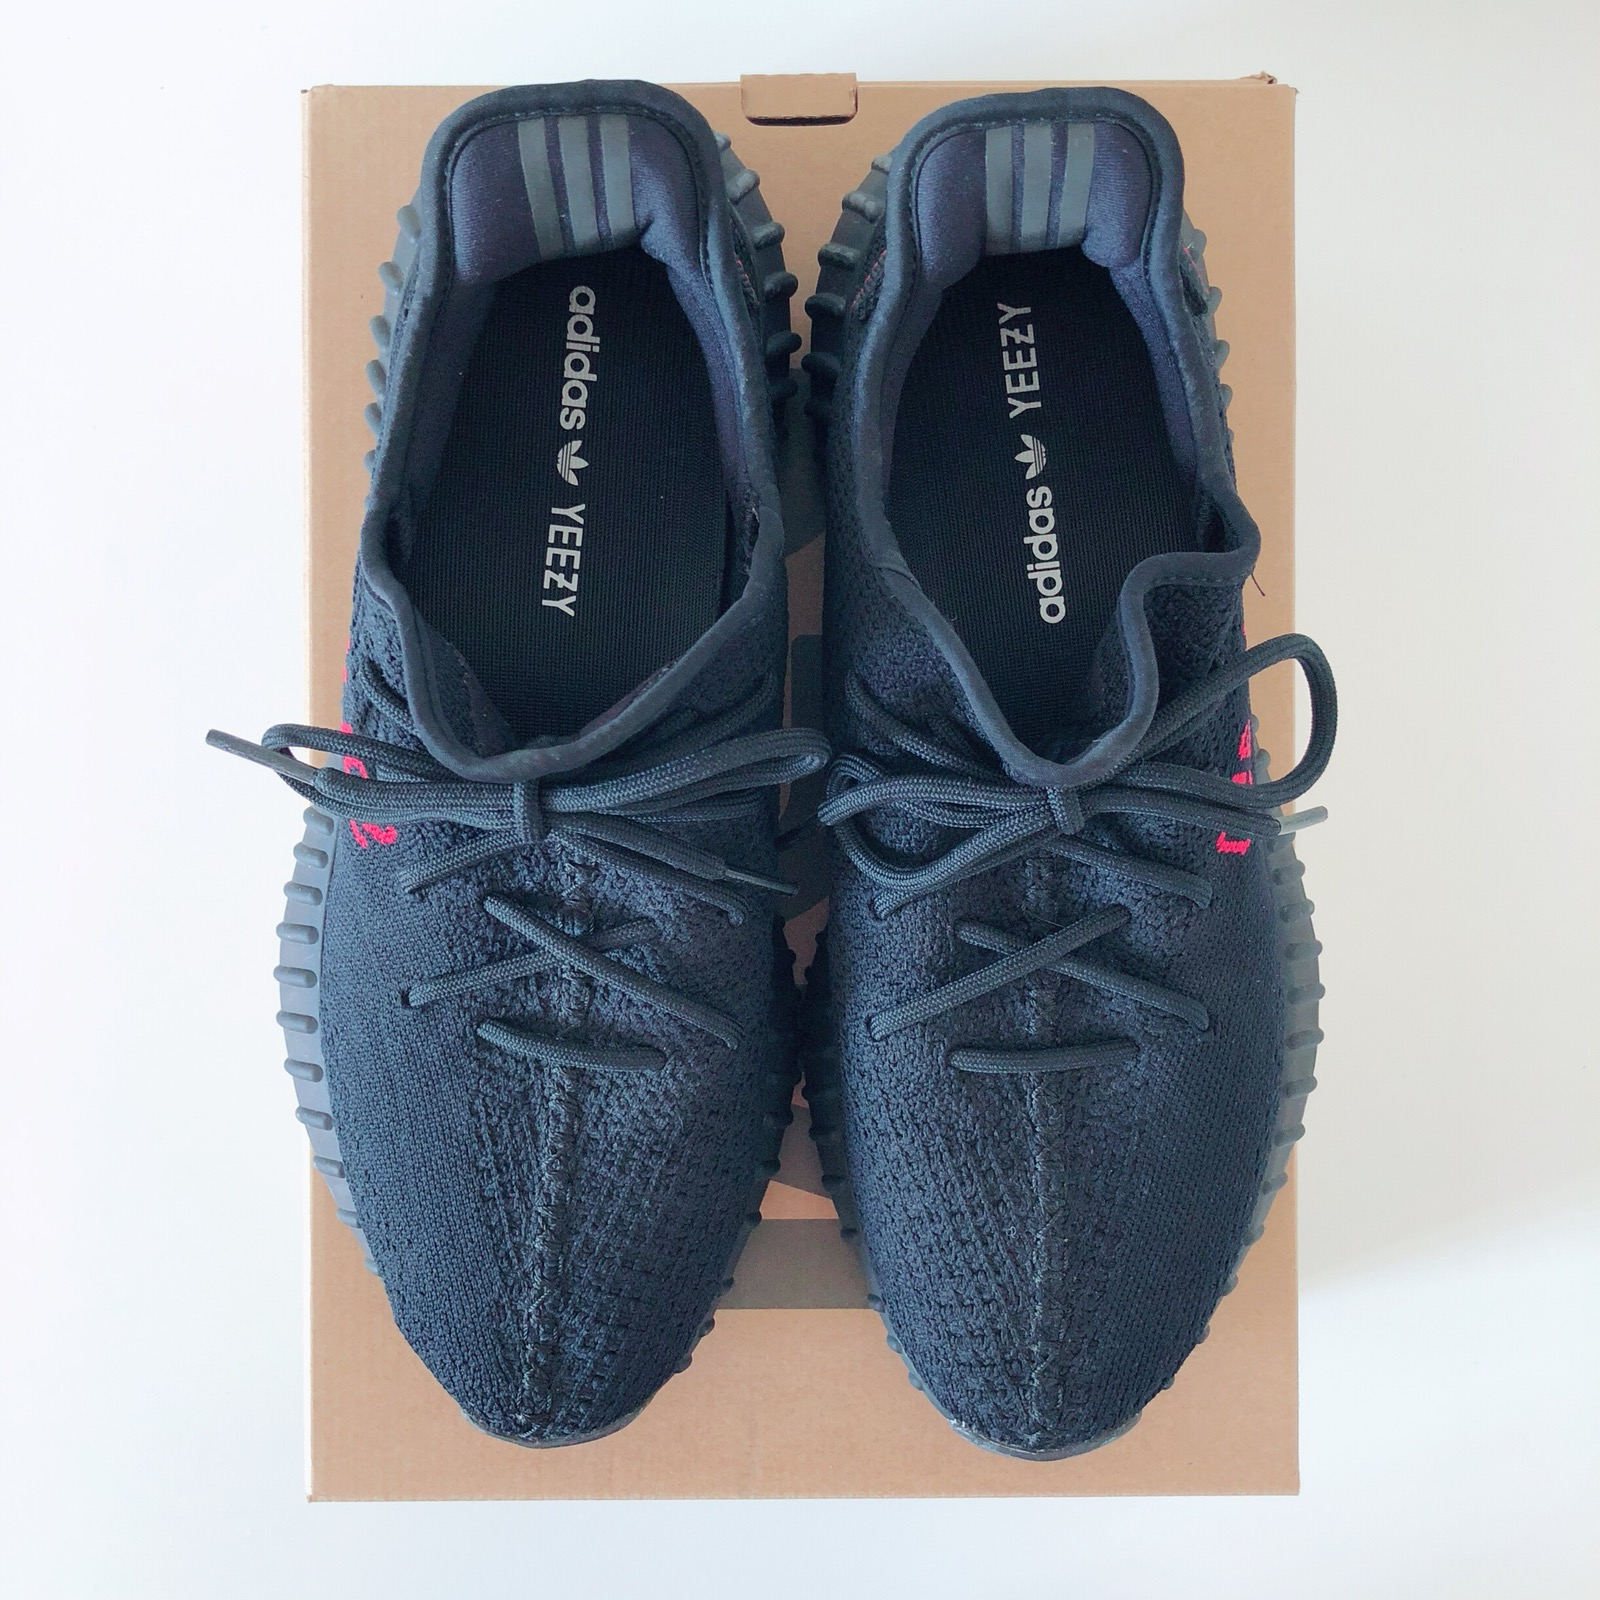 f0f75dfbec35 Yeezy Boost Adidas Yeezy Boost 350 V2 Black Red Bred Size 11.5 - Low ...